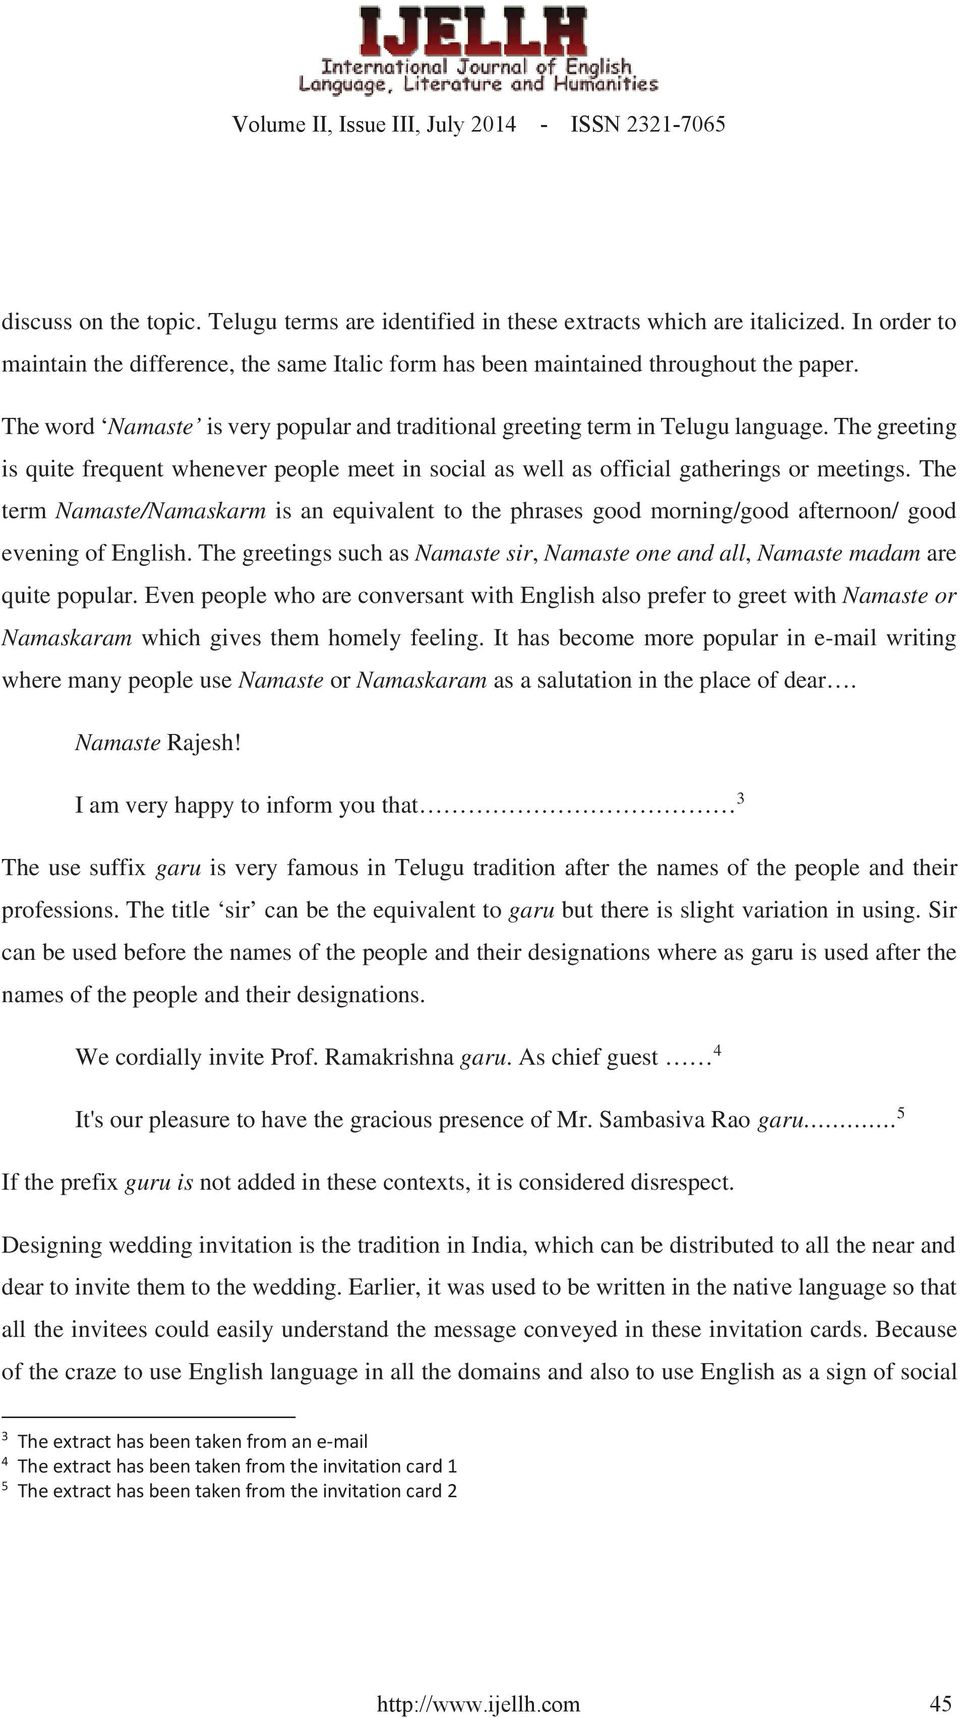 Intelligibility In The Use Of Telugu Terms And Phrases In English